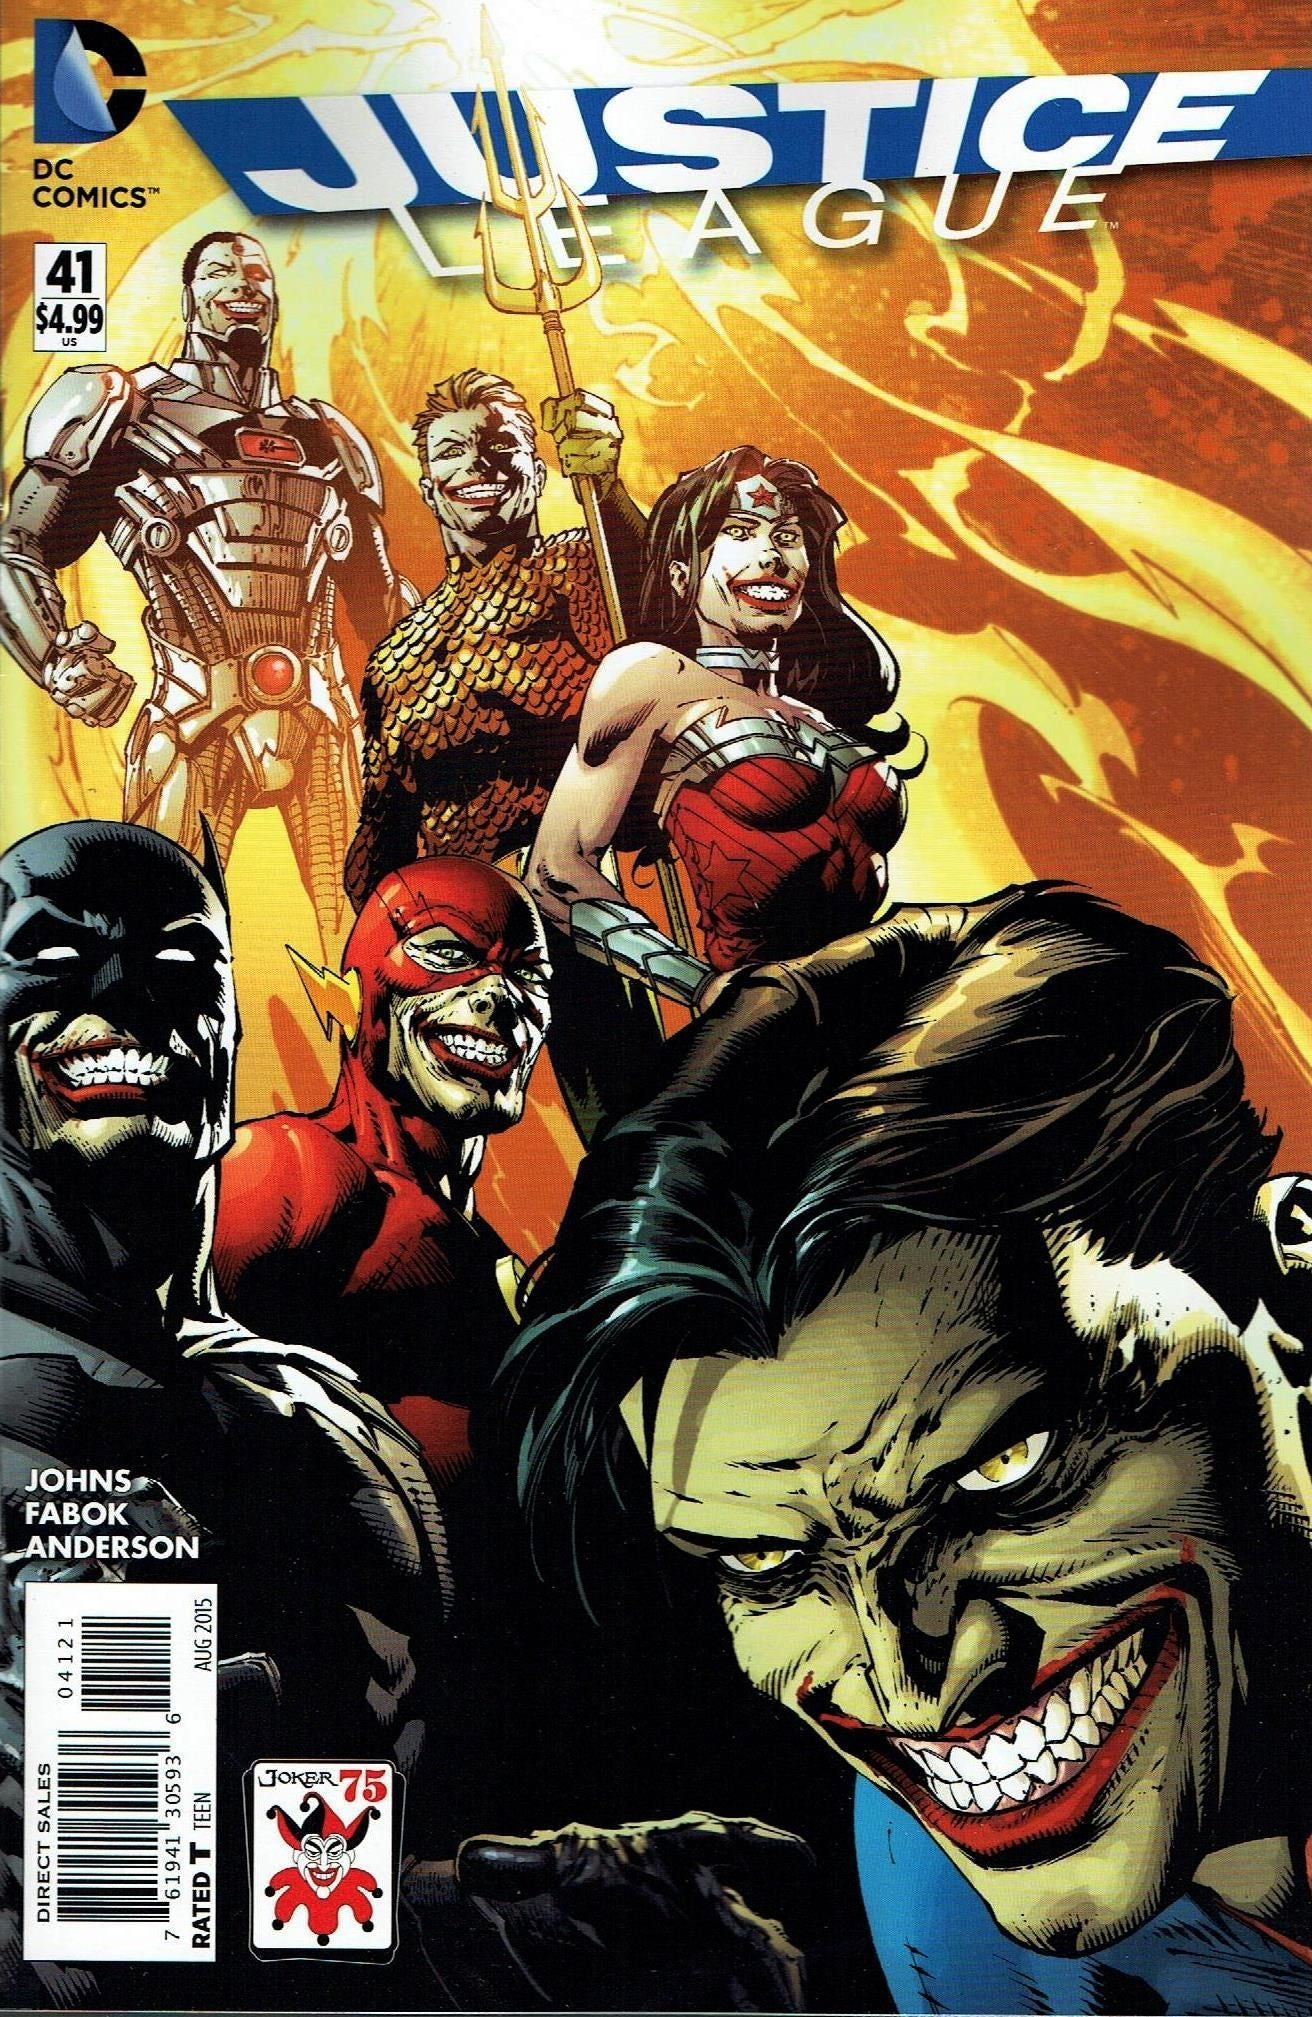 Justice League (The New 52) #41 Variant